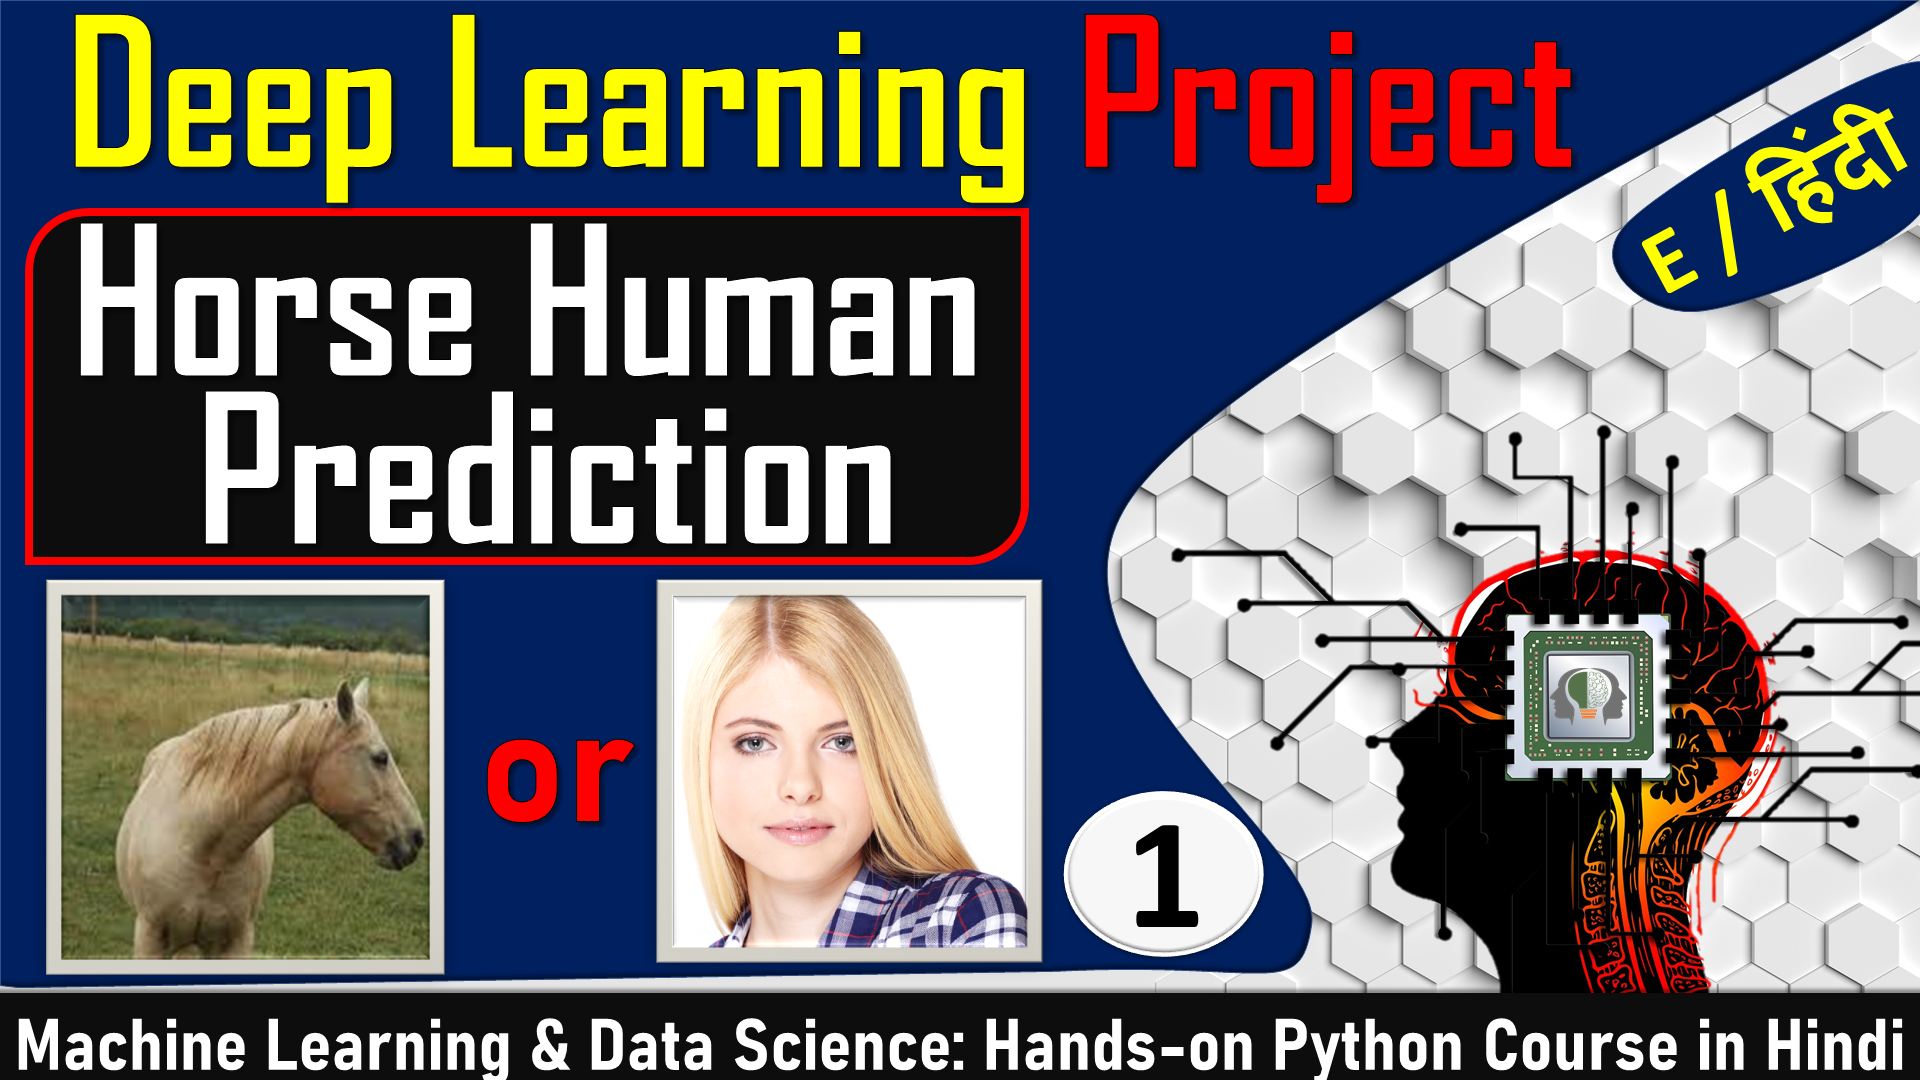 horse-or-human-prediction-deep-learning-machine-learning-project